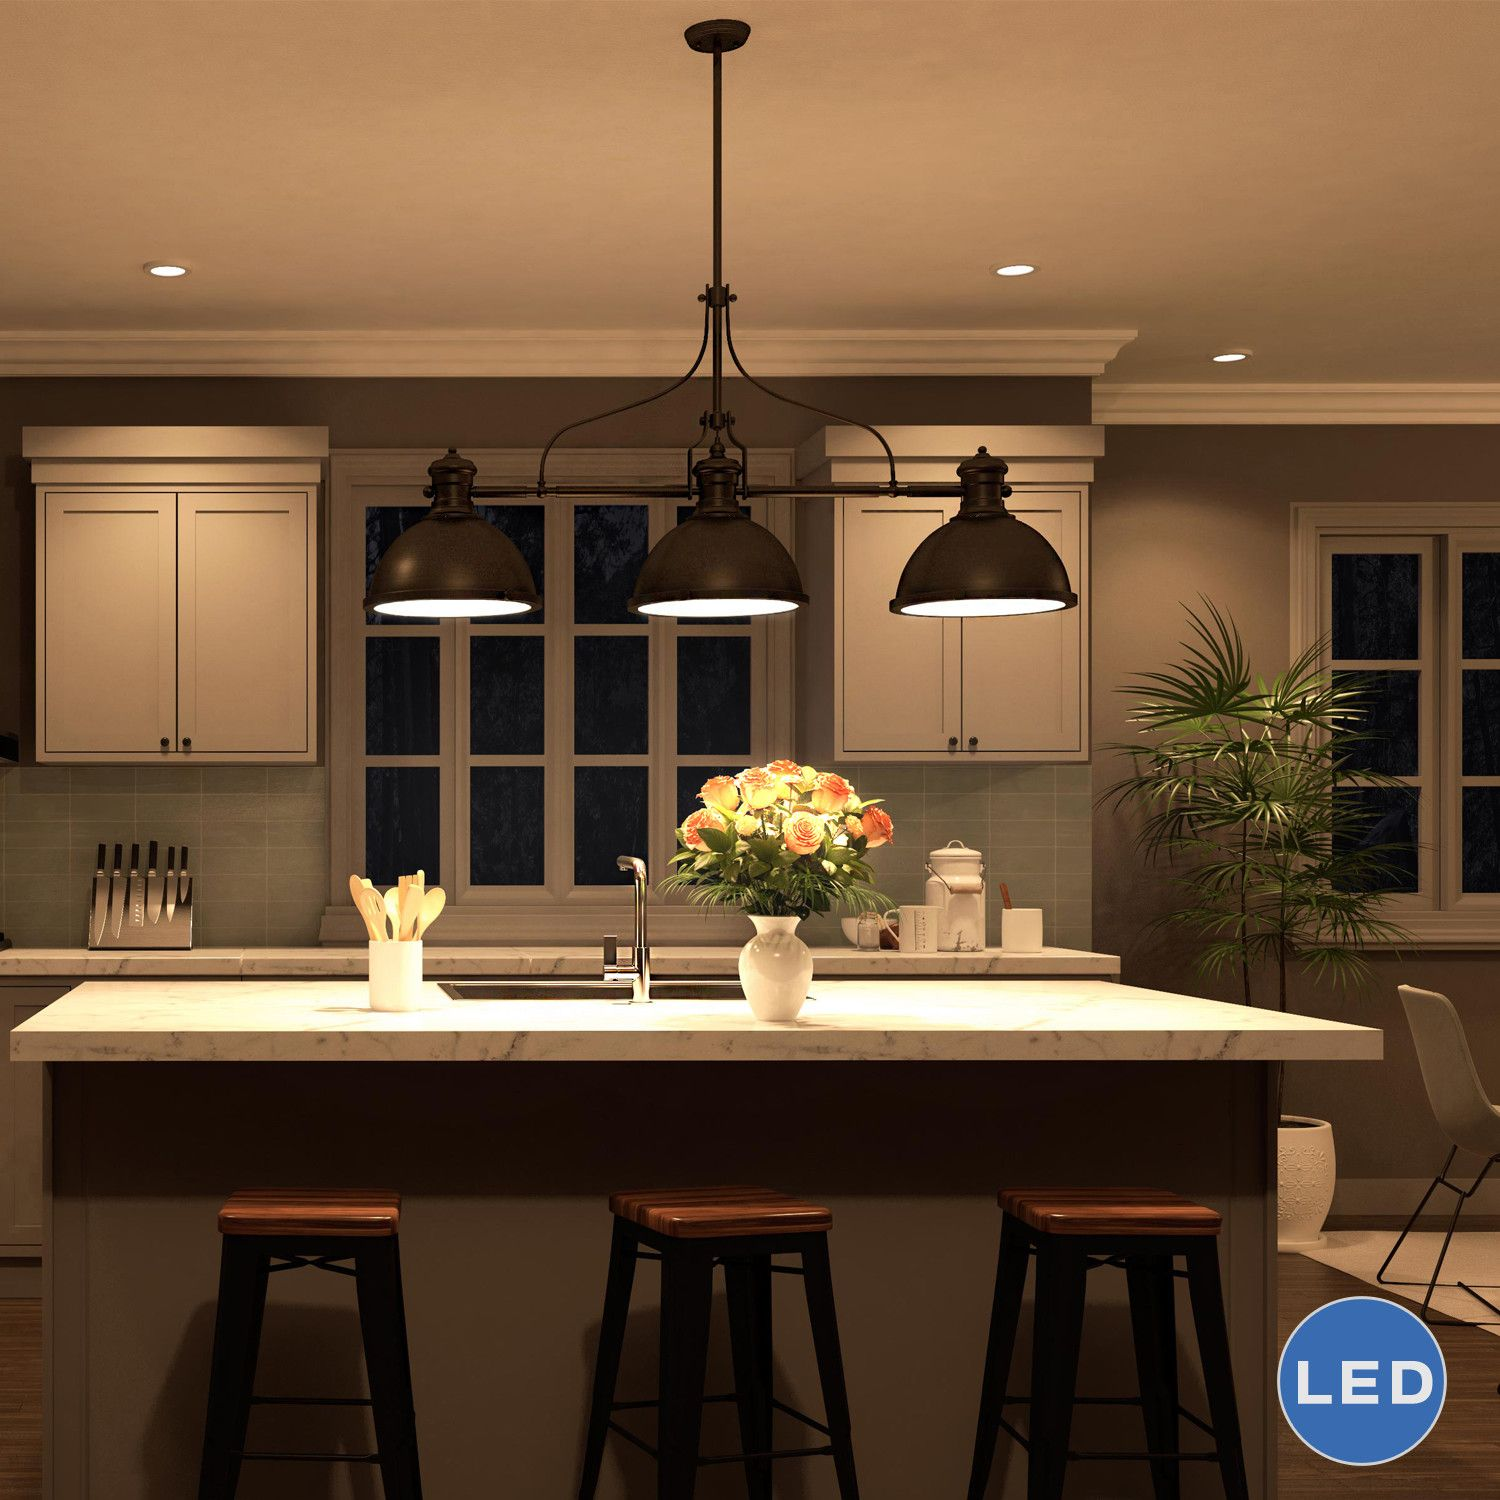 Ordinaire ... Lighting That Gives Stair Landing. Meanwhile, Other Items Are Located  In One Strategic Spot To Deliver Bright Beams Like Installed Above Kitchen  Island ...